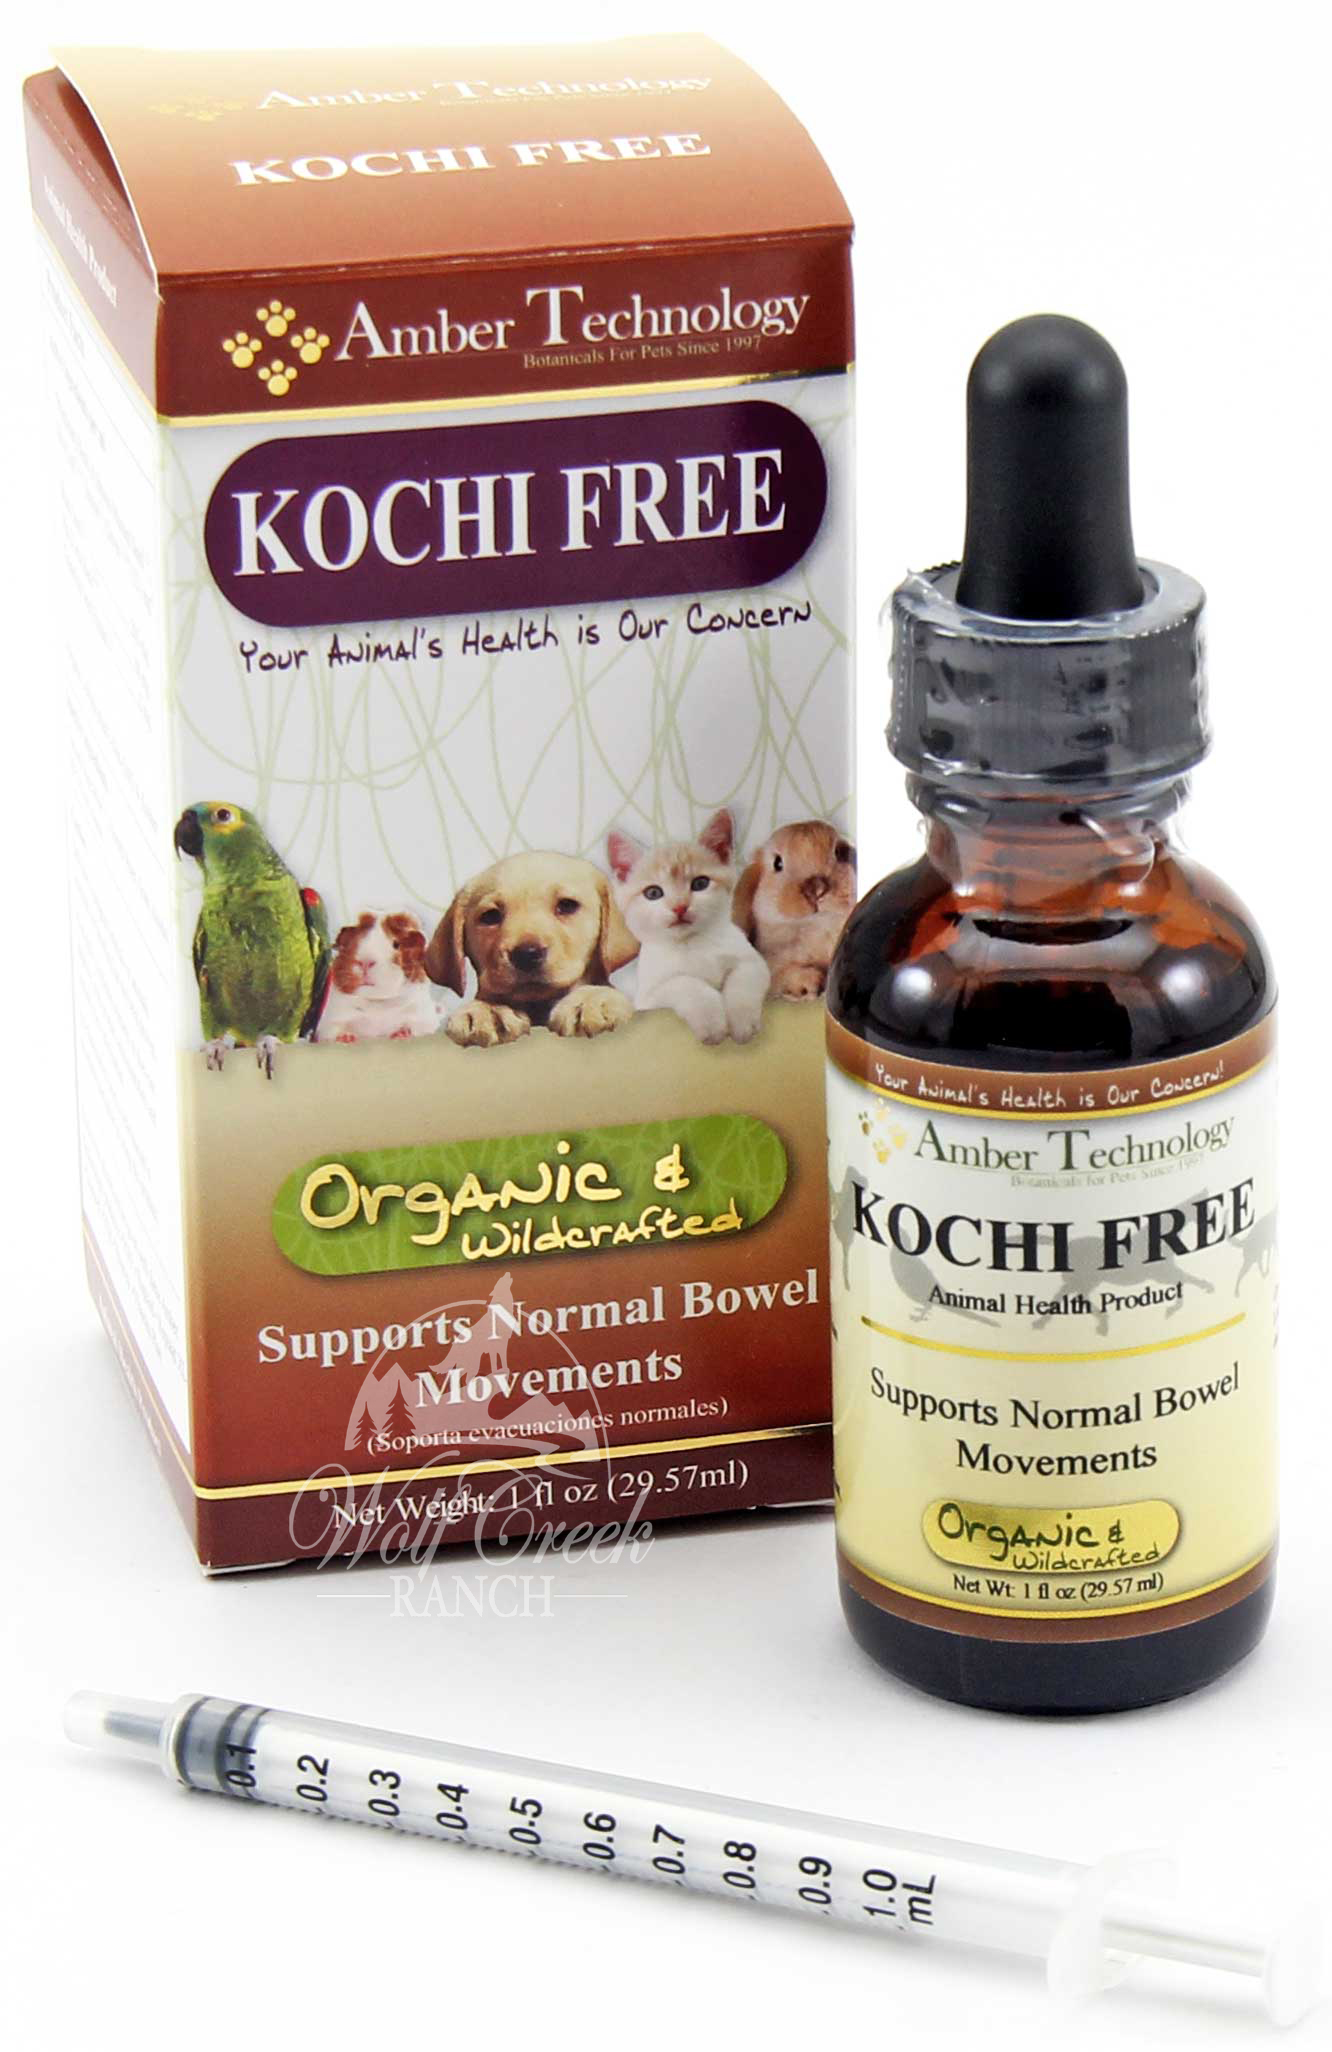 Kochi Free (aka Kocci Free) helps eliminate coccidia and giardia protozoan!  Buy Kochi Free (aka Kocci Free) to prevent coccidia infection or treat it!